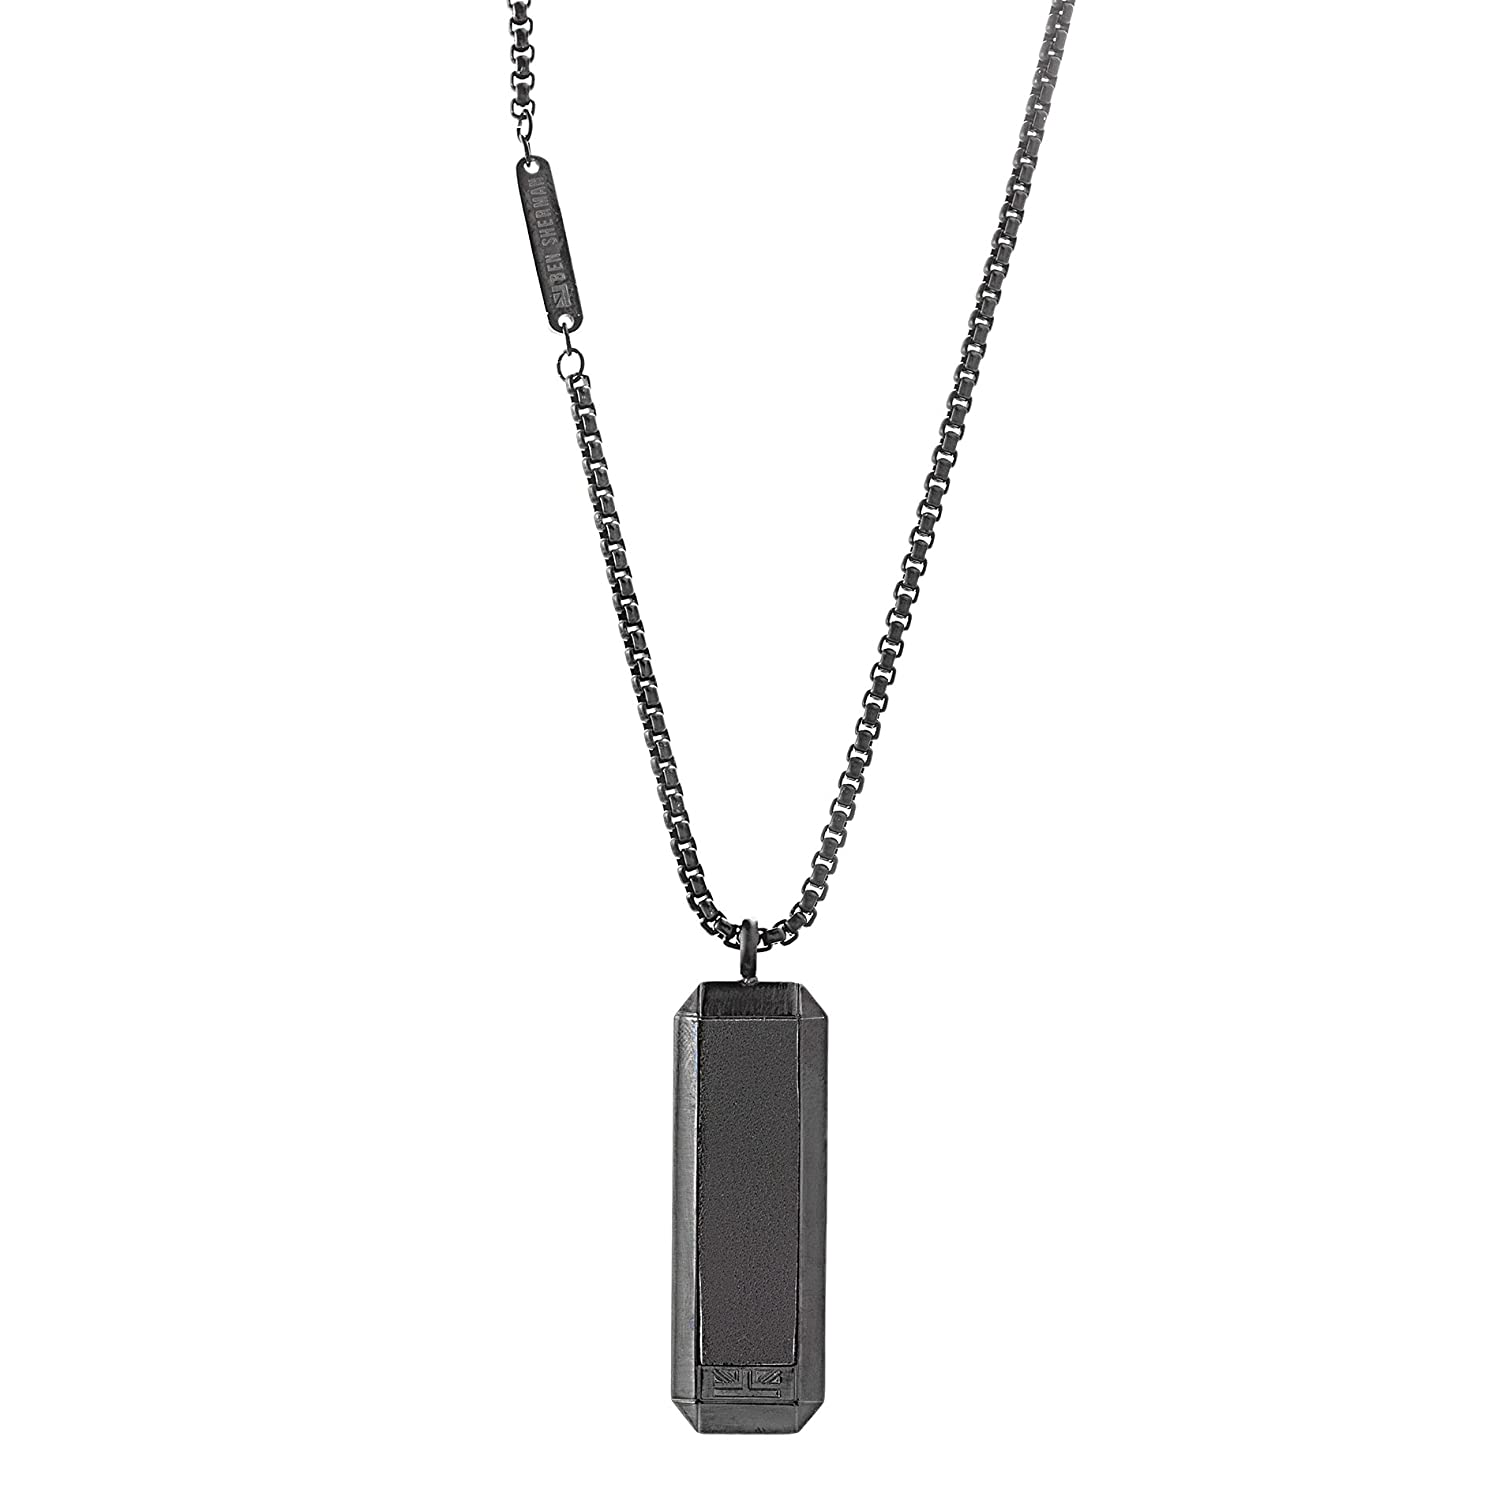 Ben Sherman Men's Black Leather Dog Tag Necklace with Stainless Steel Black IP Box Chain, 26 BSNS541012B-LBK